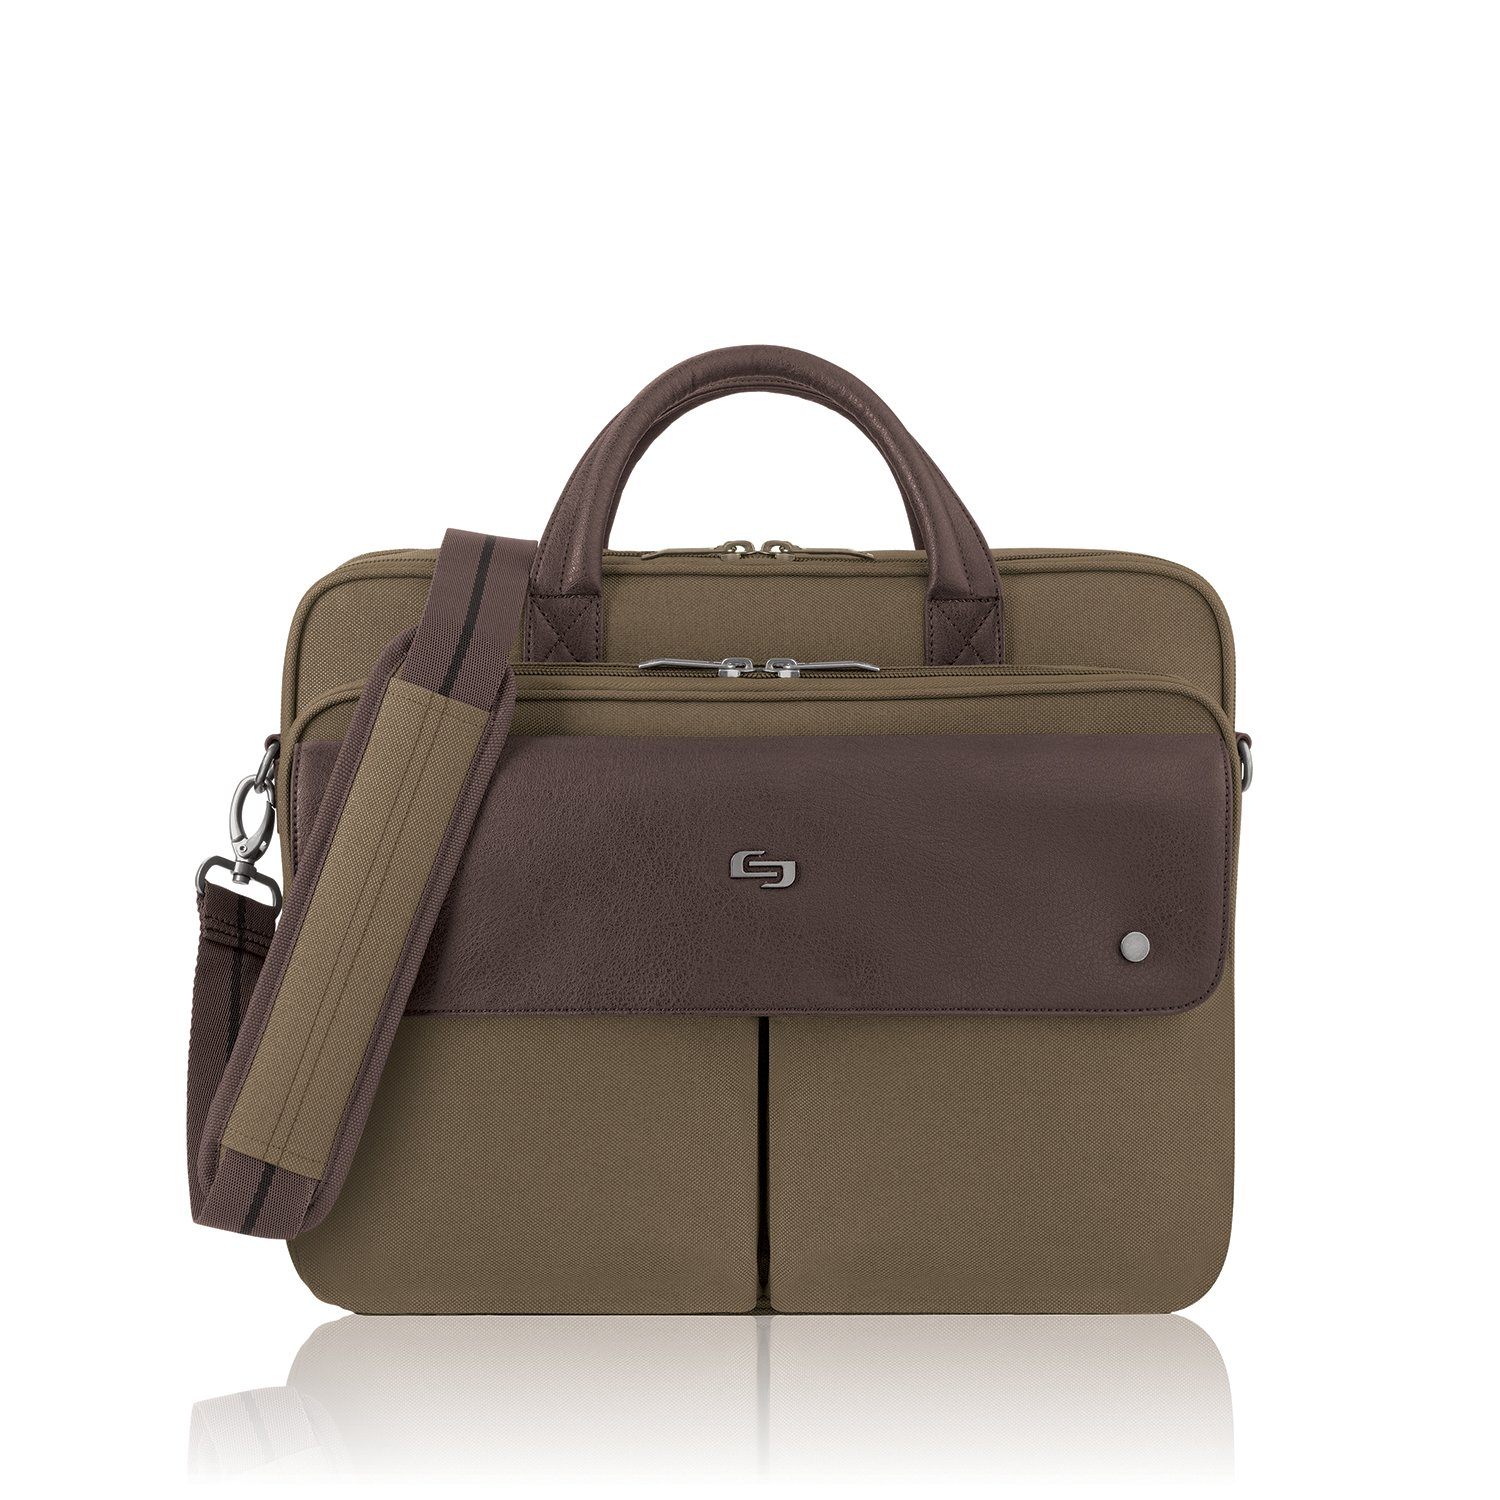 Solo Rucker 15.6 Inch Laptop Briefcase, Khaki